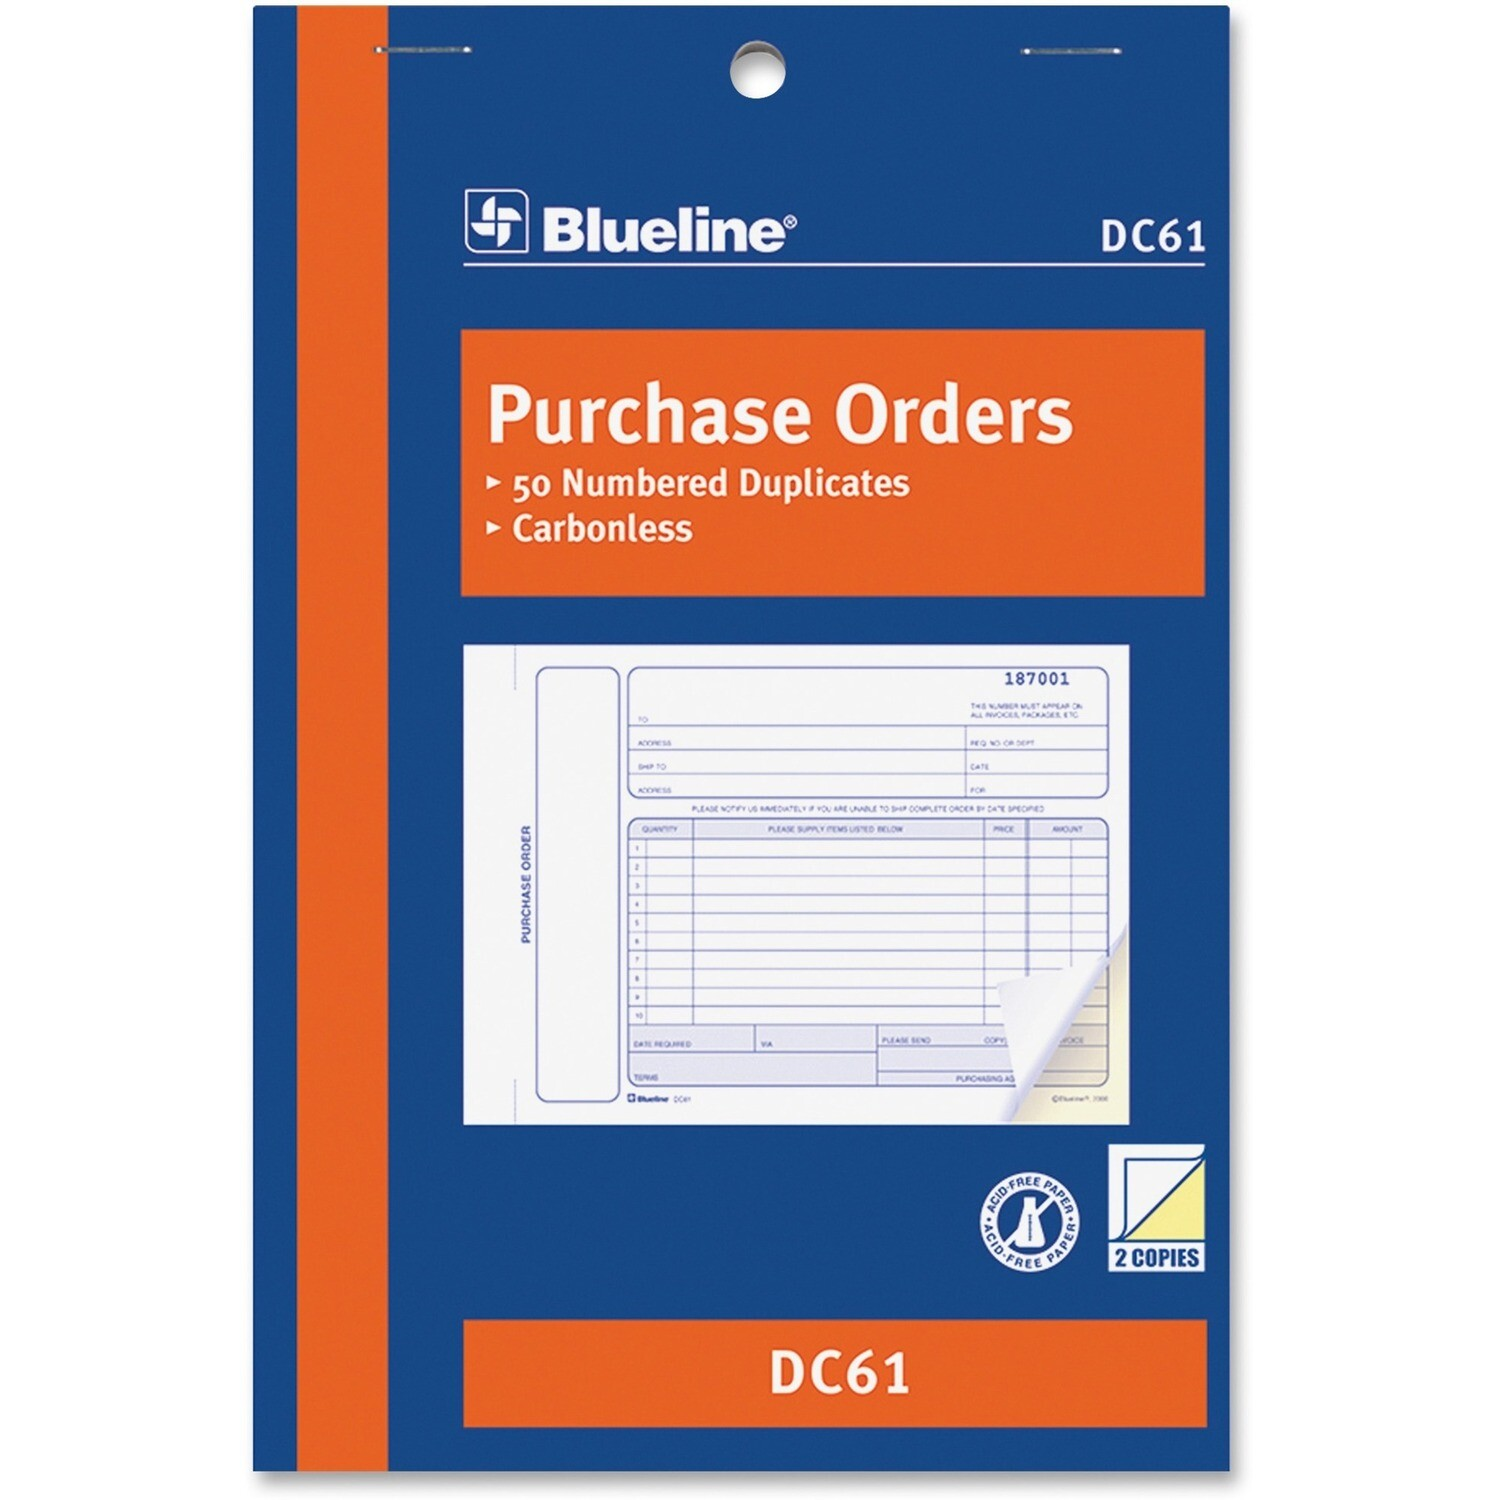 """Purchase Order Form Book, Blueline 50 Duplicates, 5 3/8"""" x 8"""""""